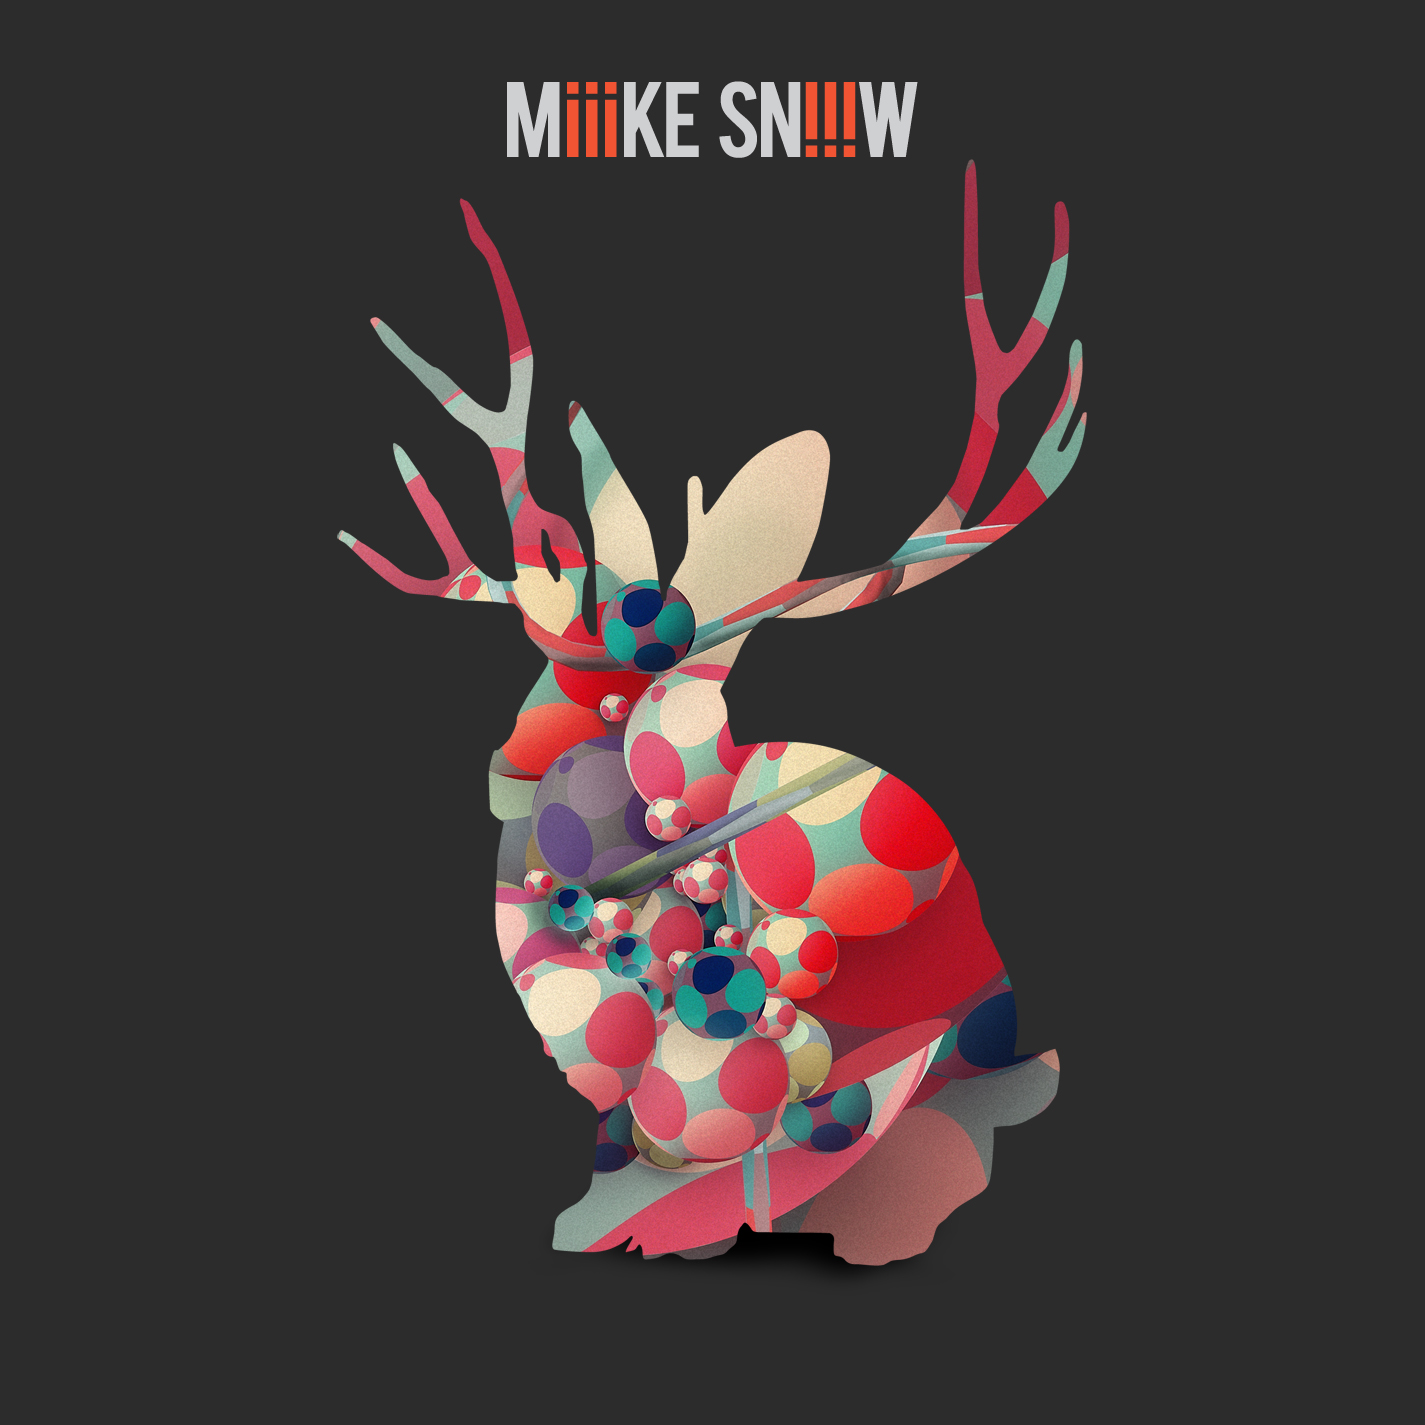 GET MiiKE SNOW'S NEW ALBUM iii NOW!